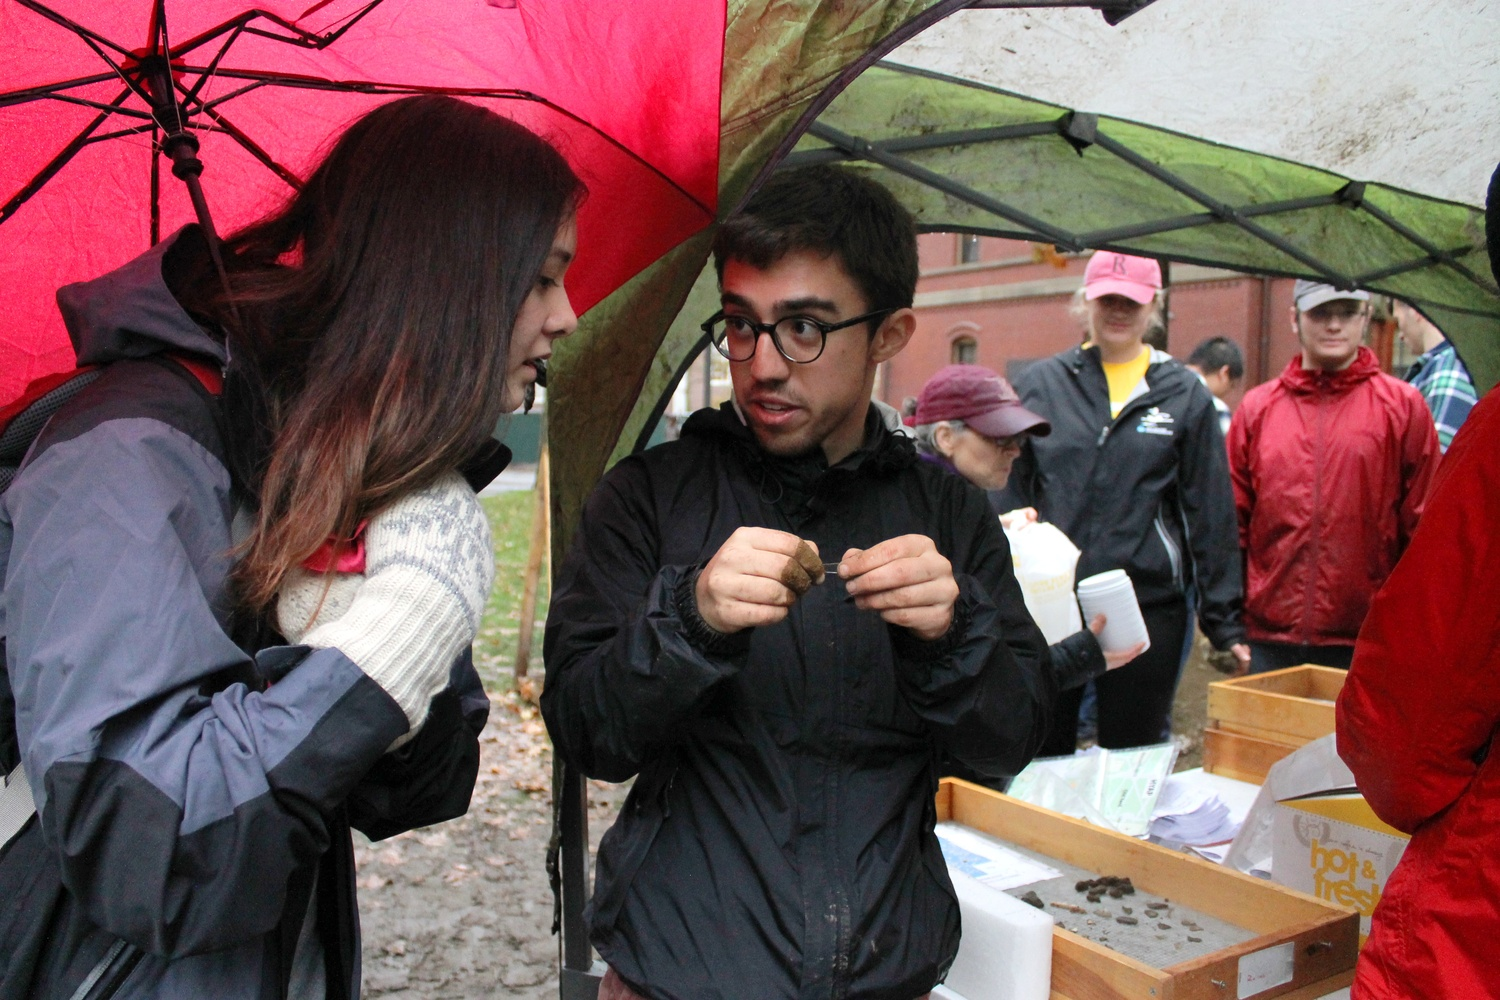 Santiago Pardo '16, member of the Harvard Yard Archaeology Project, explains recent finds to Hannah K. Rasmussen '16 outside of Matthews Hall despite the rain and cold weather on Thursday afternoon.